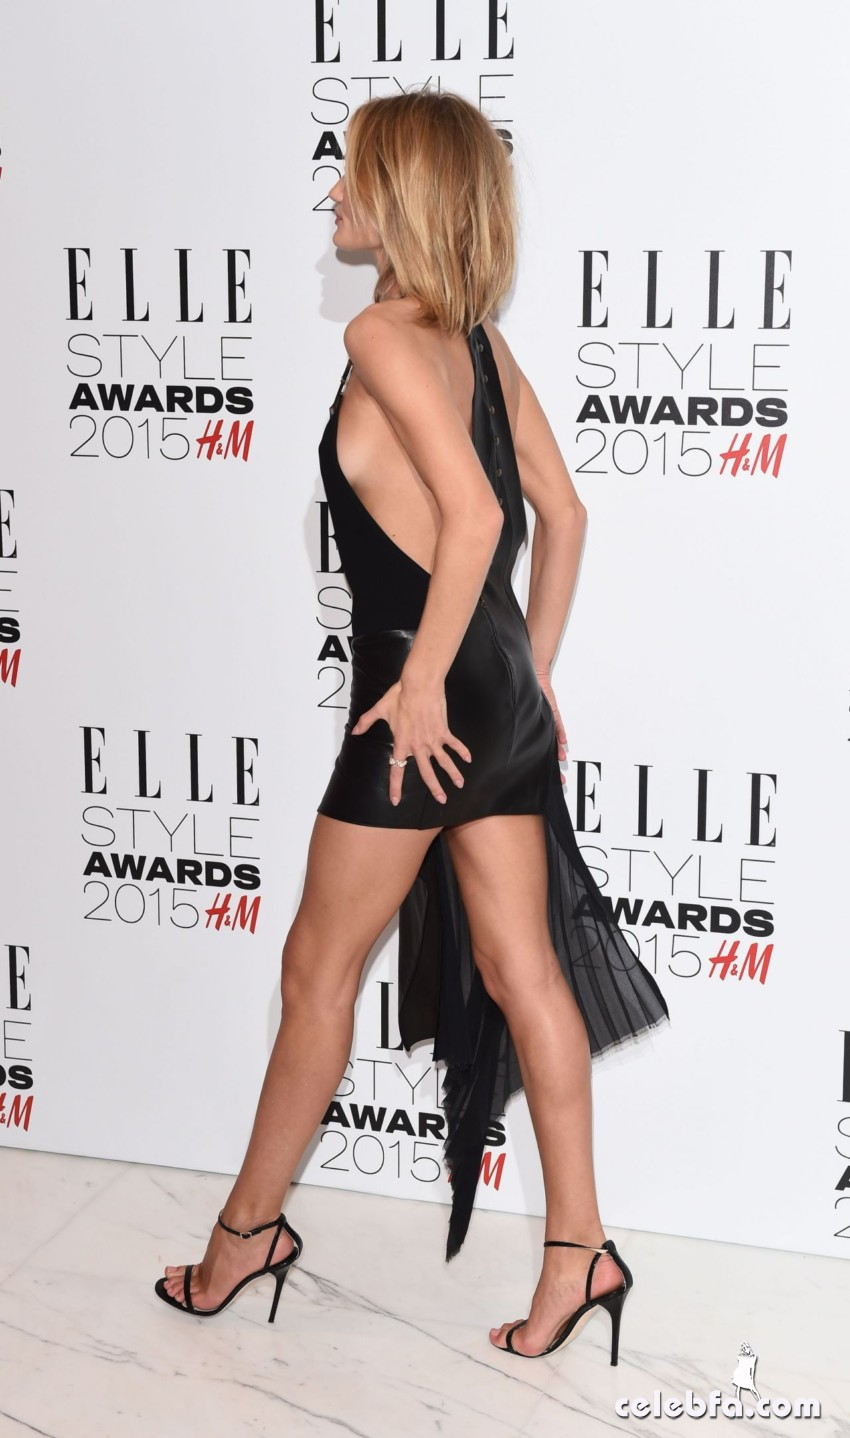 rosie-huntington-whiteley-2015-elle-style-awards-in-london (3)